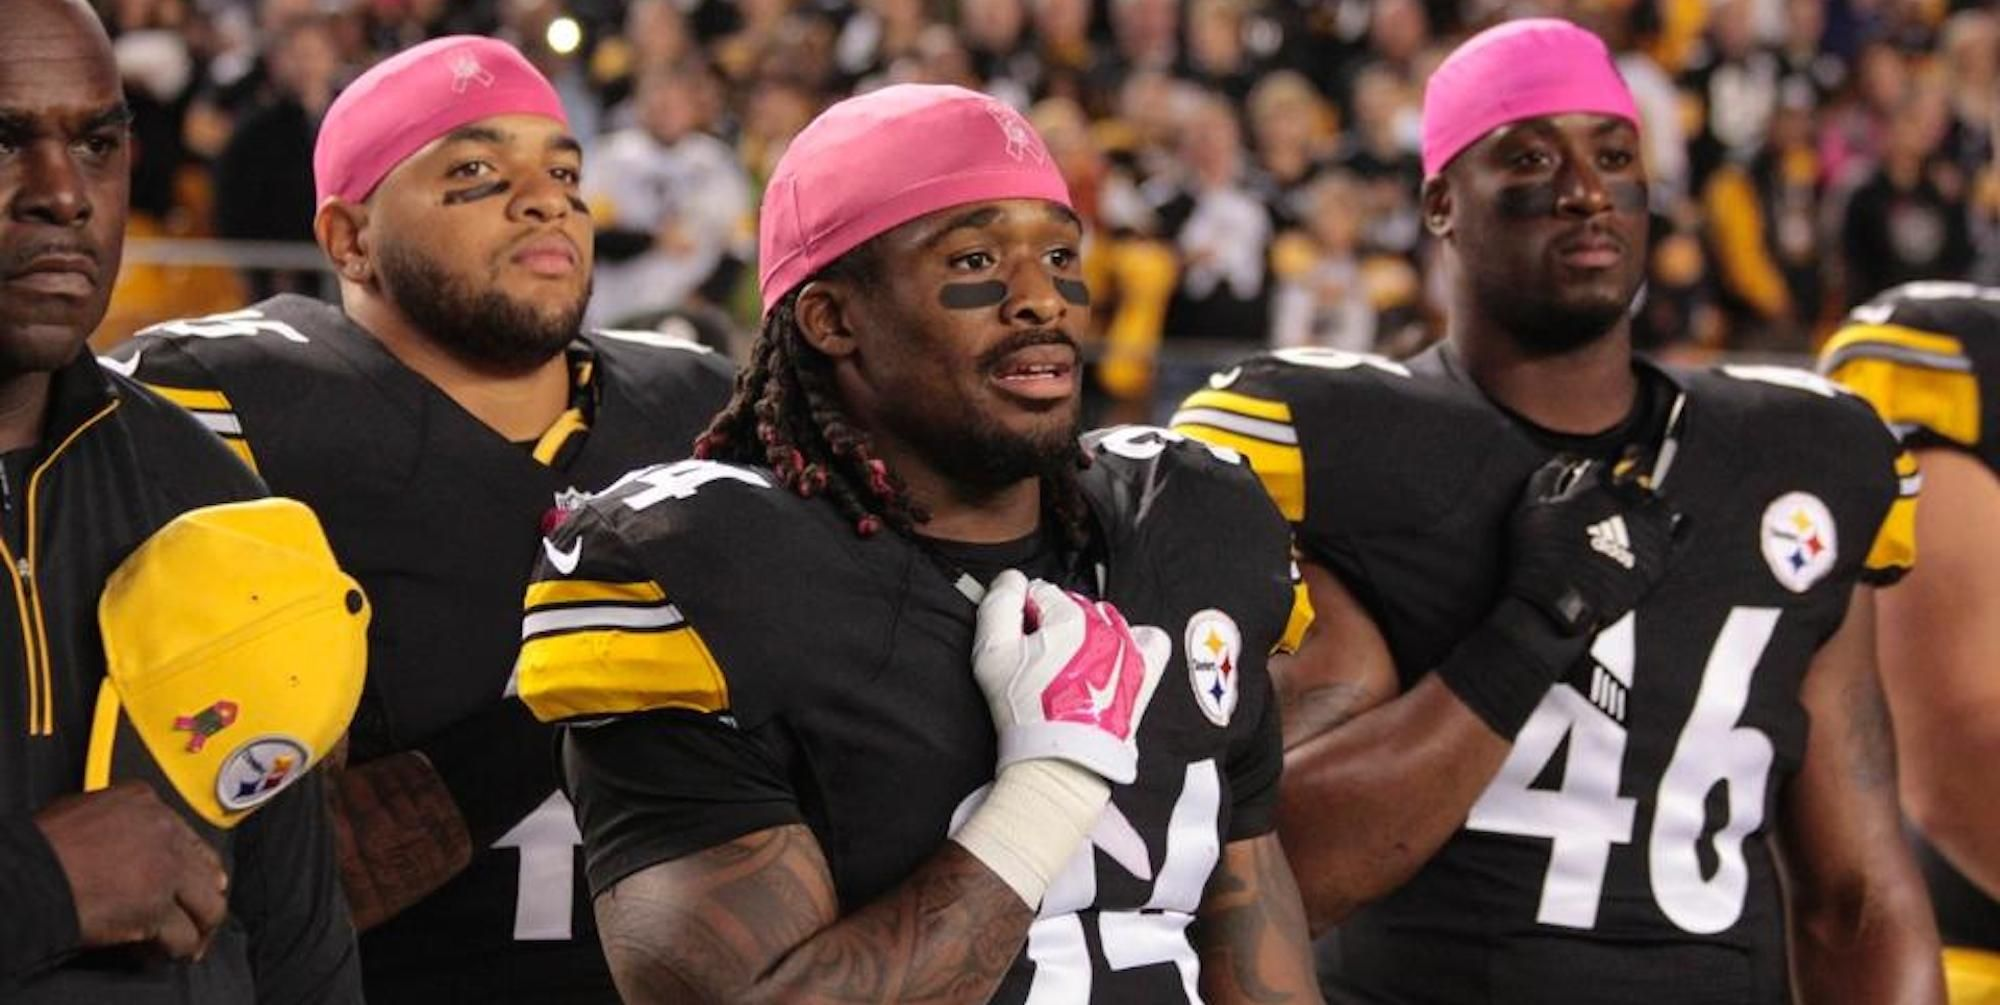 c16b9d947 NFL Prevents Player from Wearing Pink - DeAngelo Williams Story